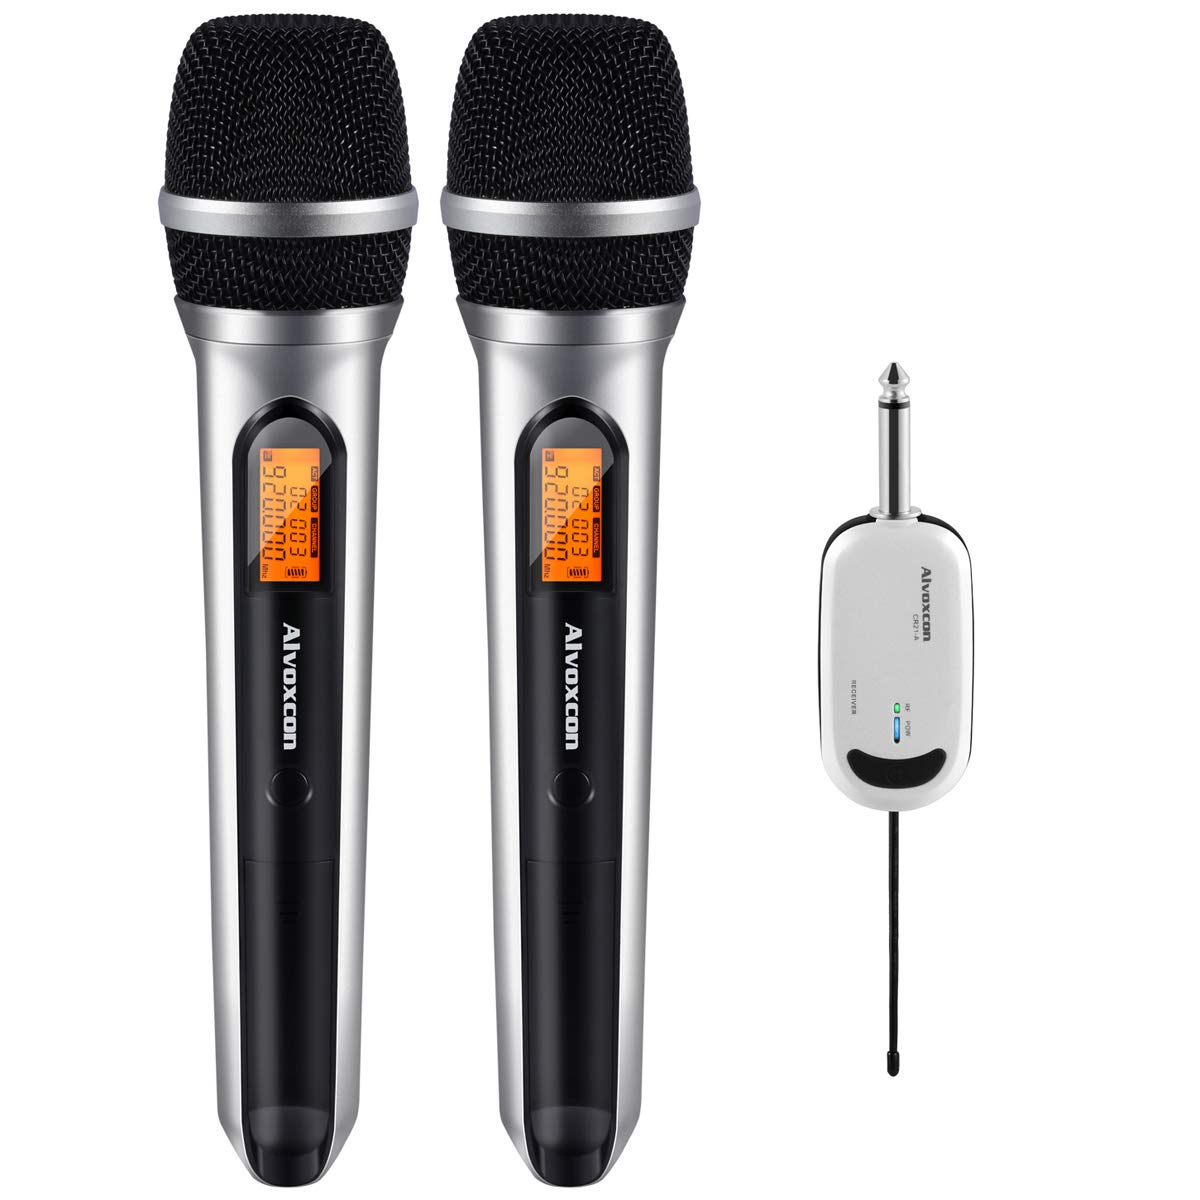 Wireless Microphone System, Alvoxcon DUAL UHF Dynamic Handheld mic for iPhone, Computer, Karaoke, Conference, DJ, Vocal Recording, Singing, Church, On Stage Performance, Party Events (1/4 inch plug) by Alvoxcon